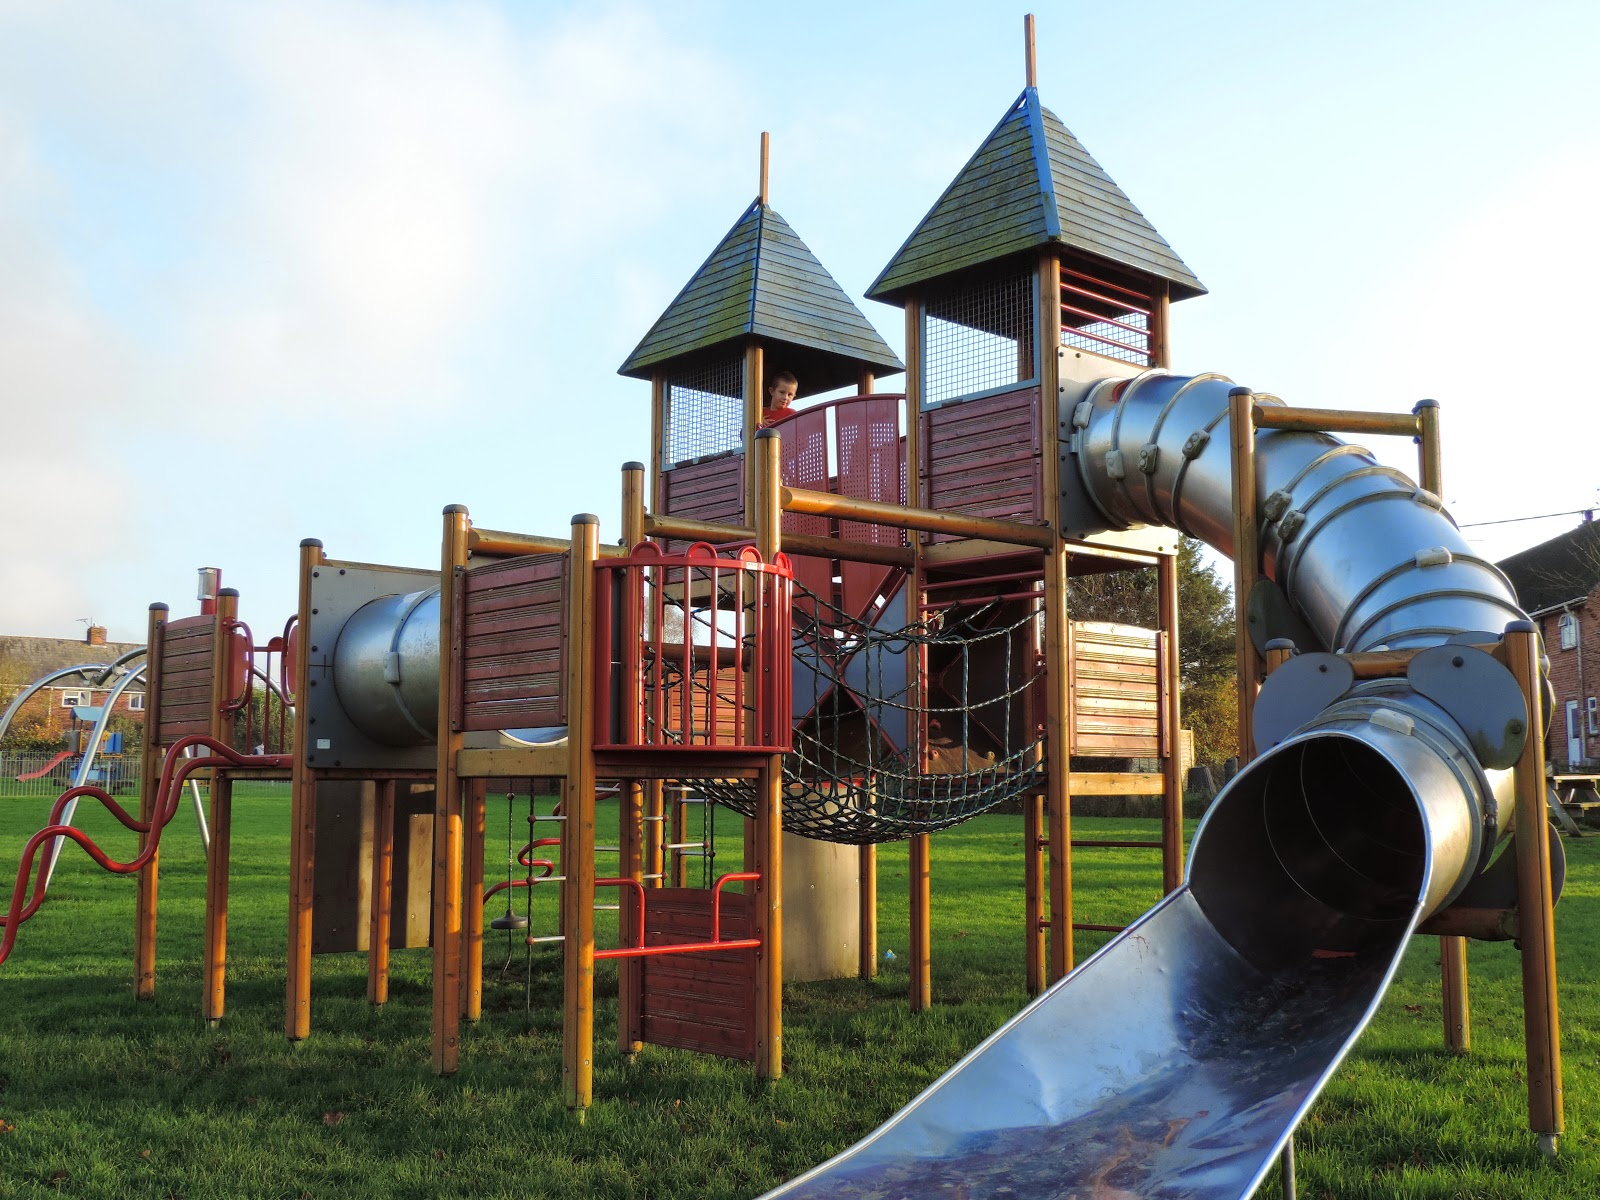 playpark tubular slide dorset county council